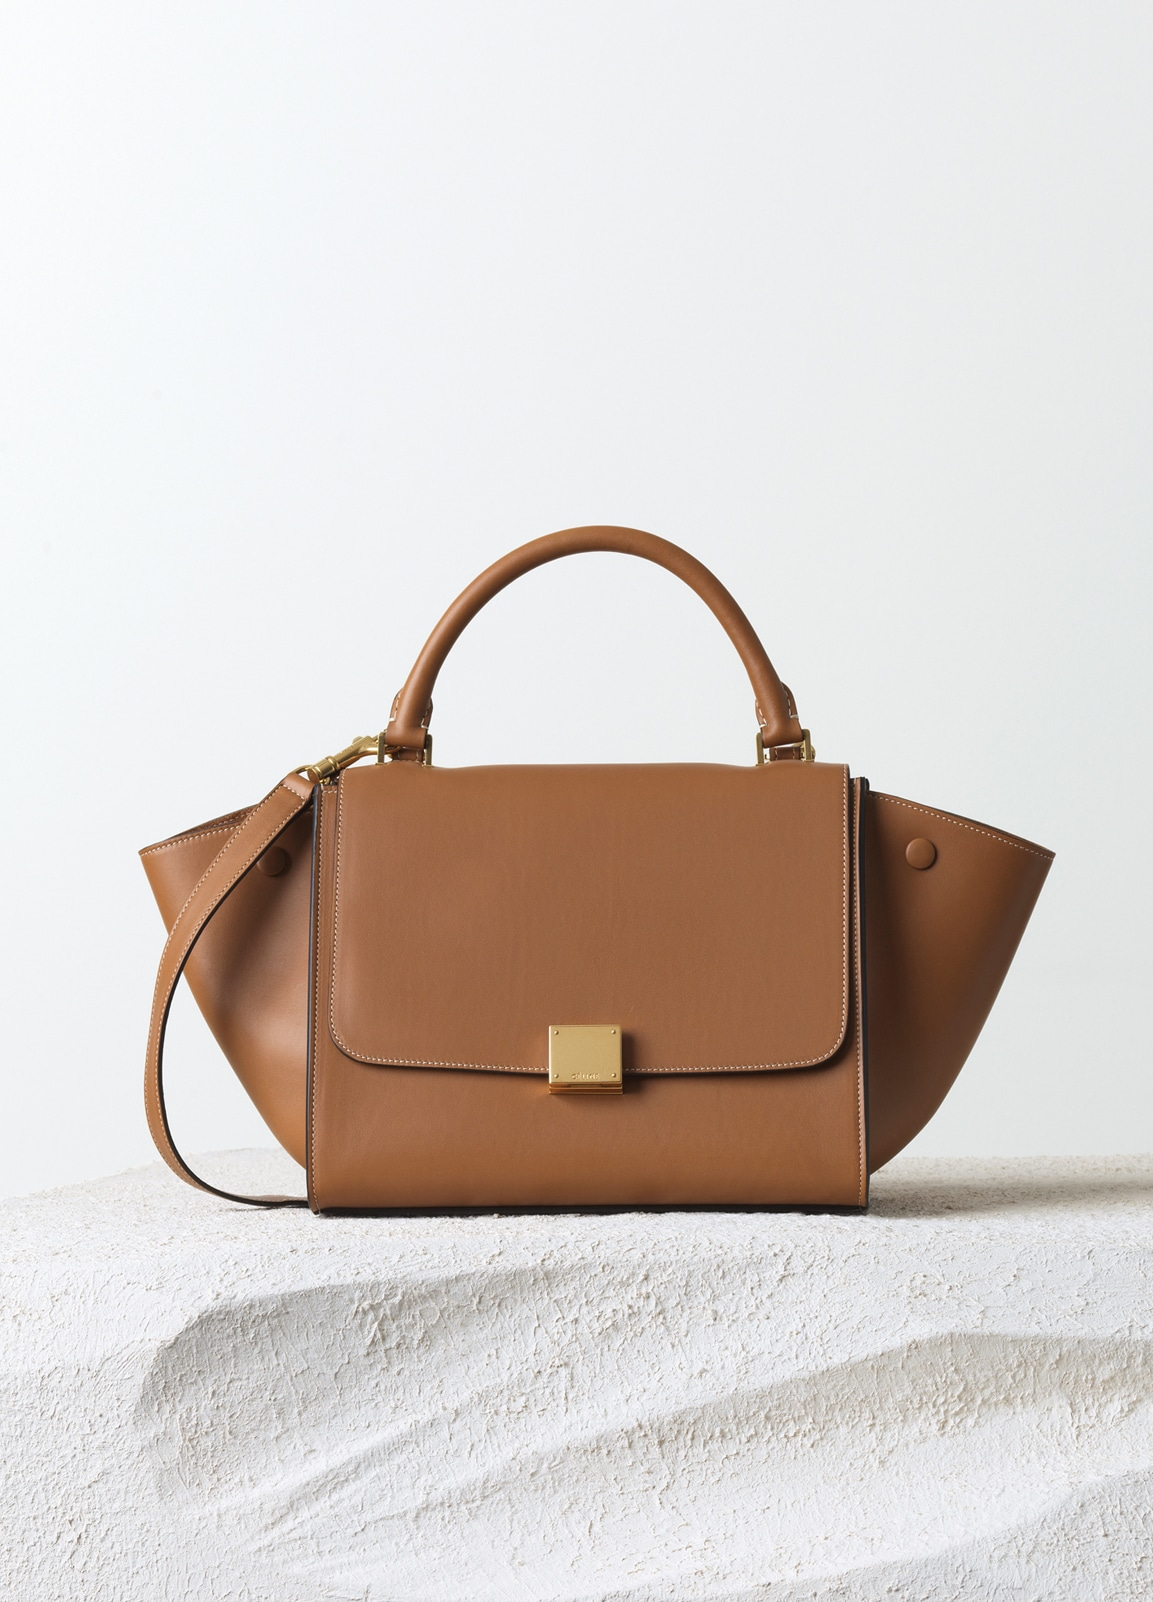 celine wallets online - Celine Trapeze Tote Bag Reference Guide | Spotted Fashion